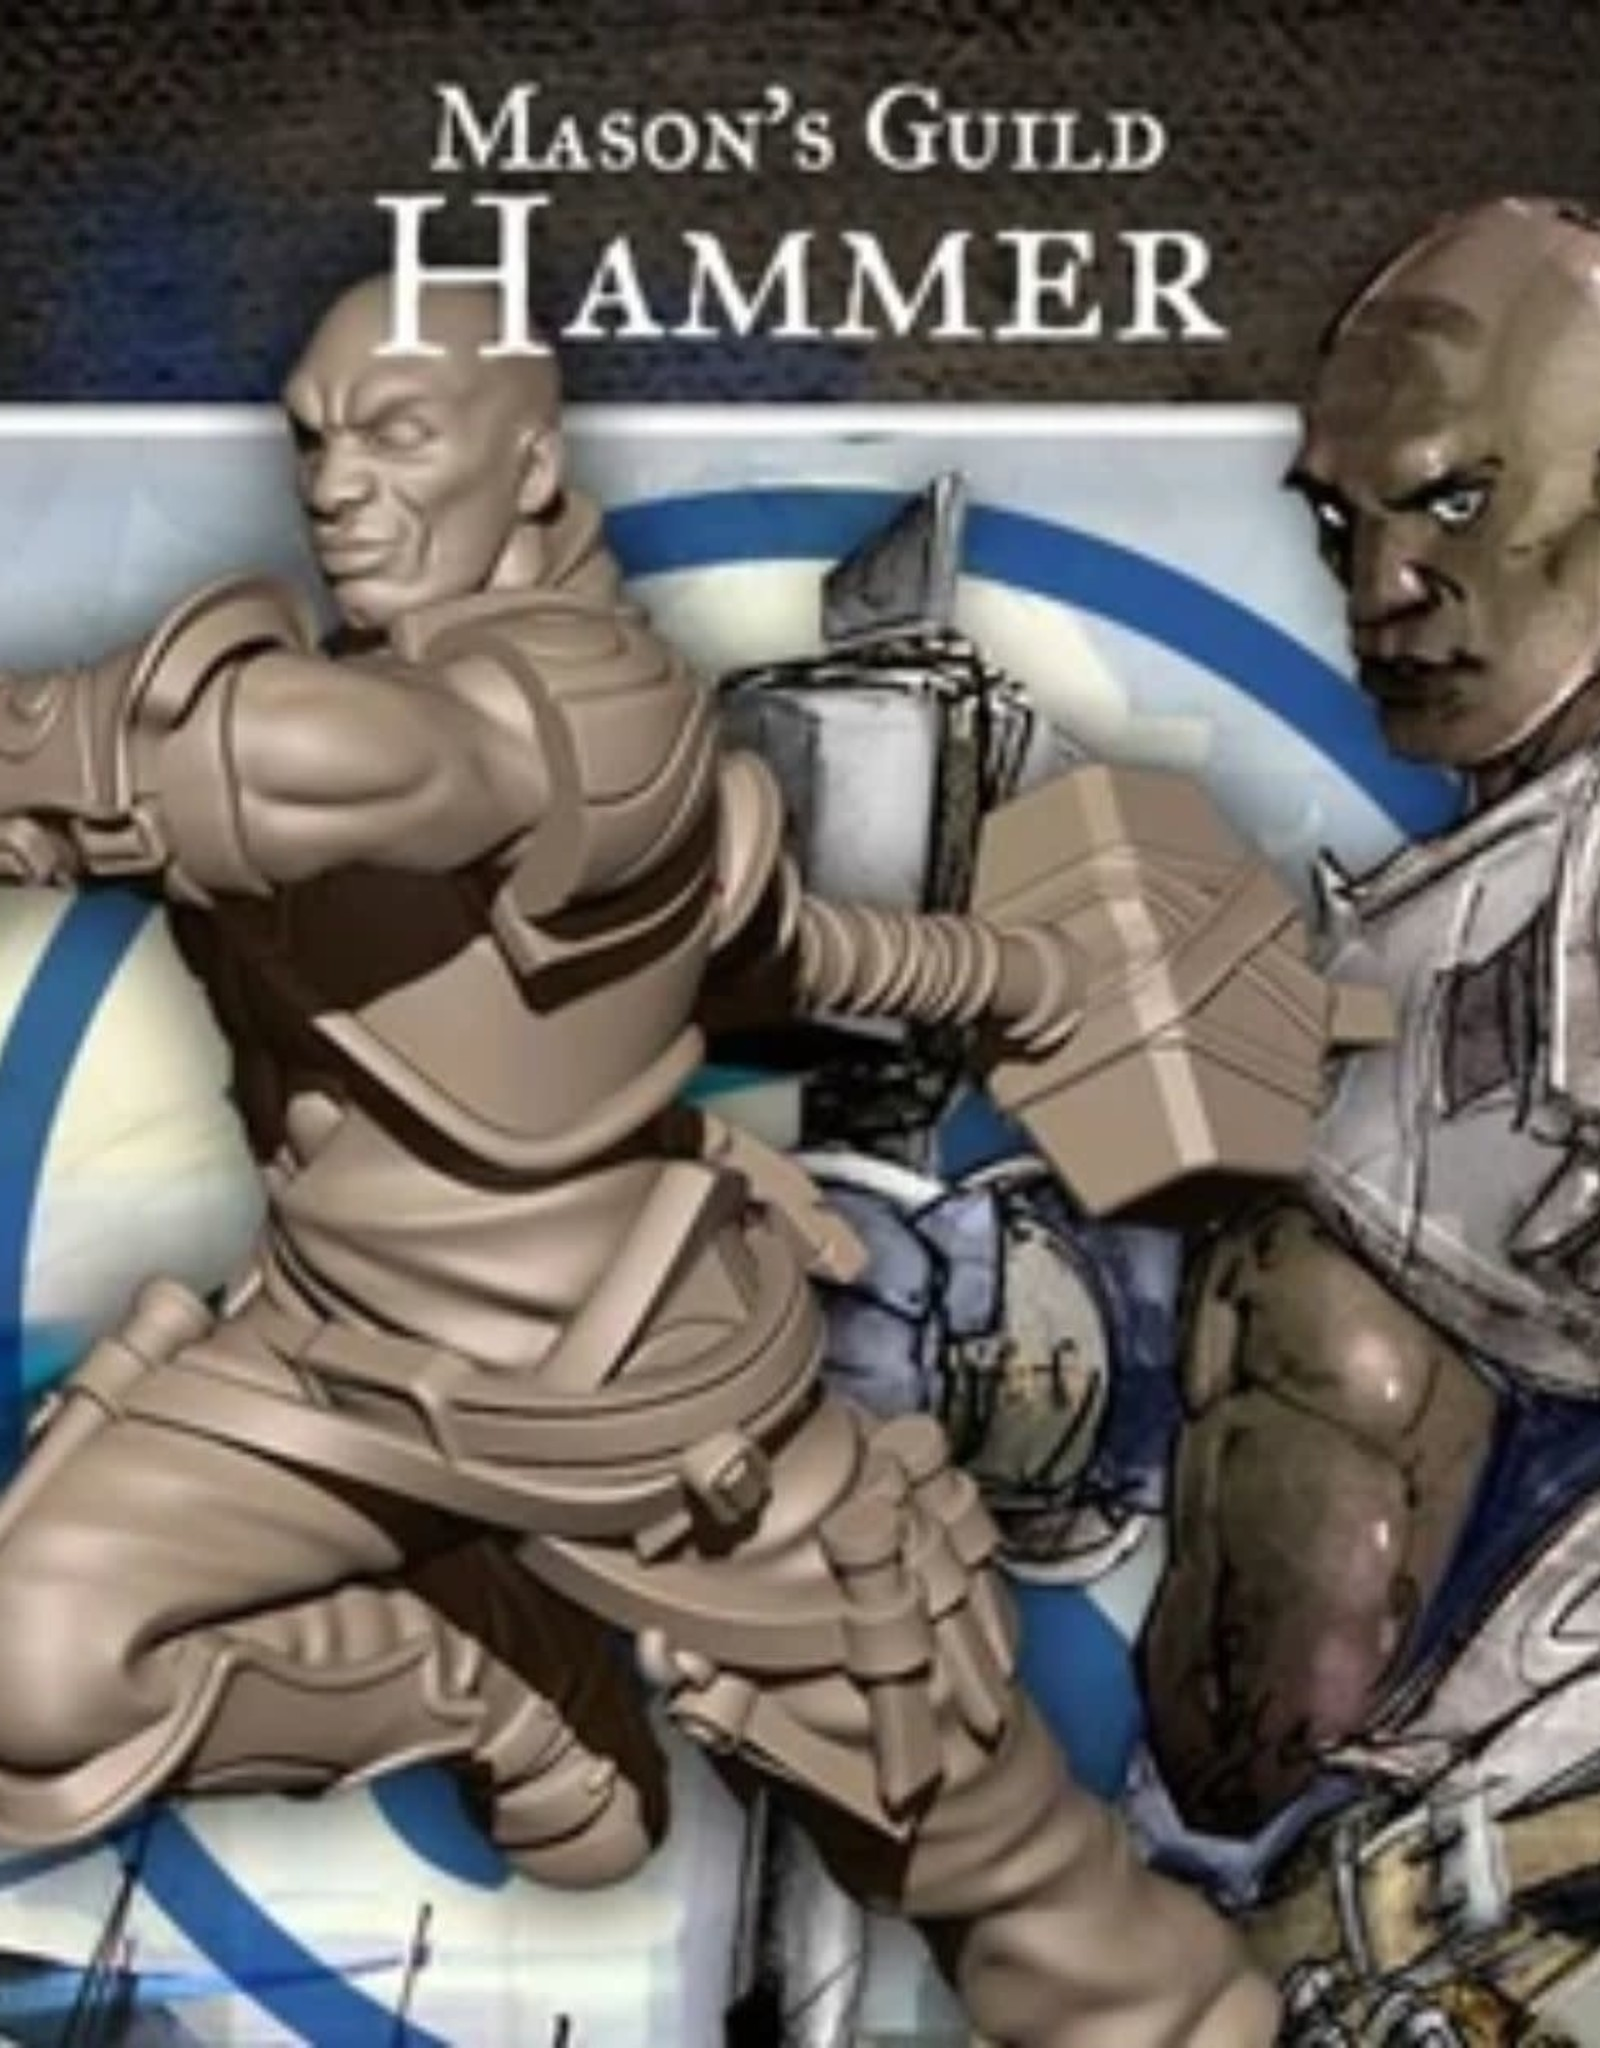 Guild Ball GB - Masons: Hammer